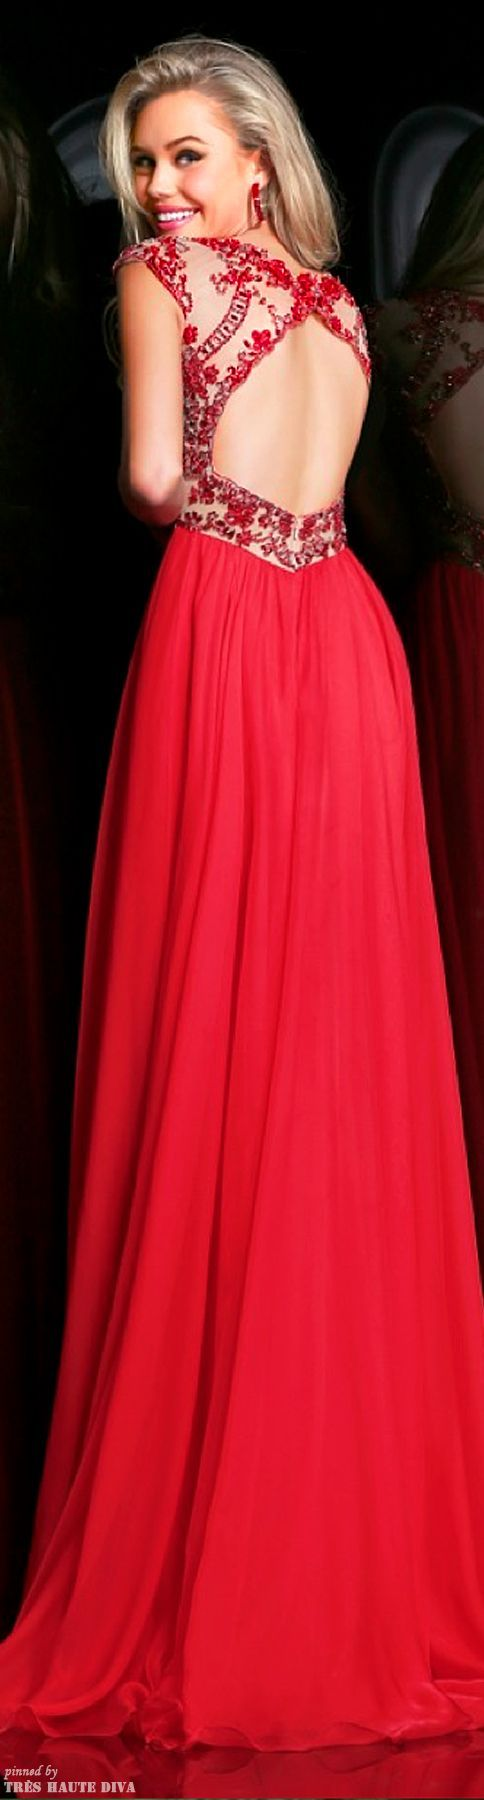 Pin by abby miller on dressing up pinterest beaded prom dress